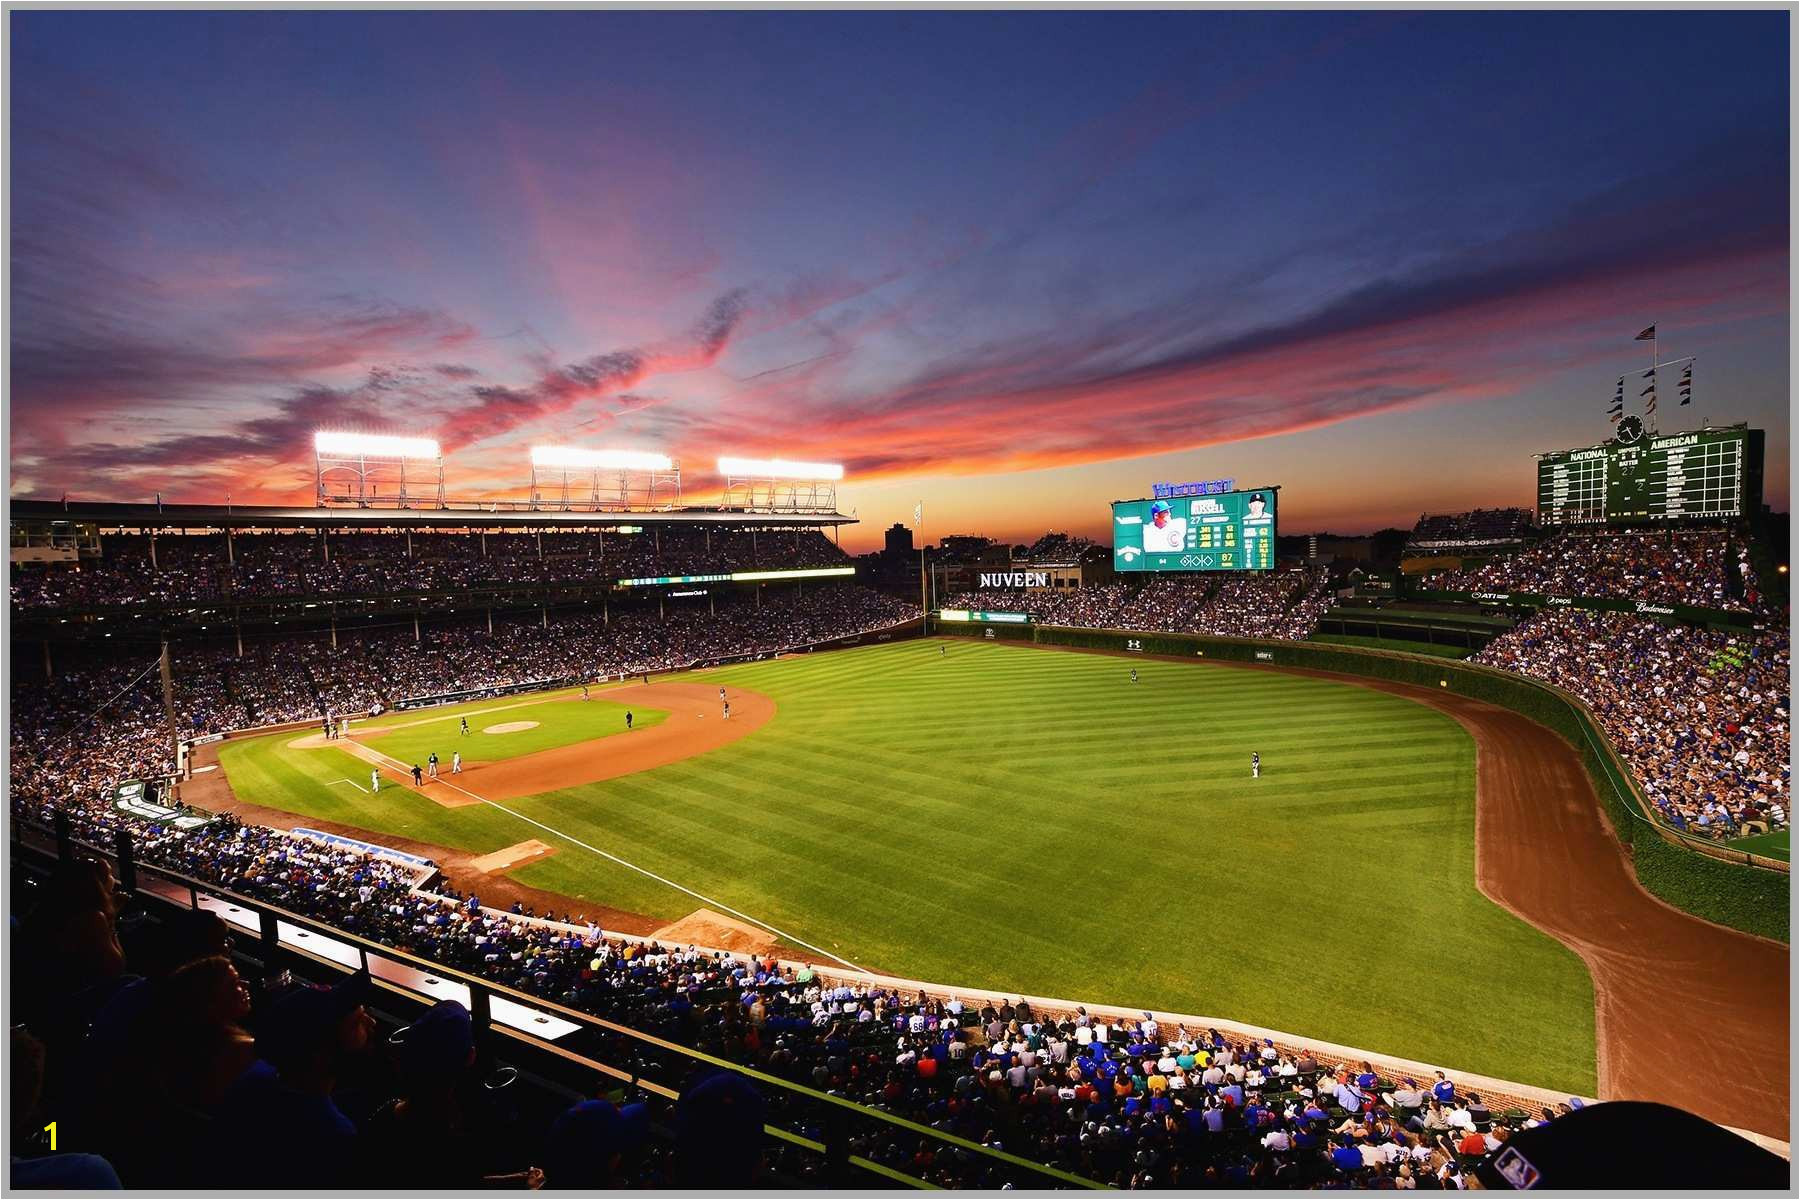 Baseball Stadium Wallpaper Murals Amazing Wrigley Field Wall Mural Palesten